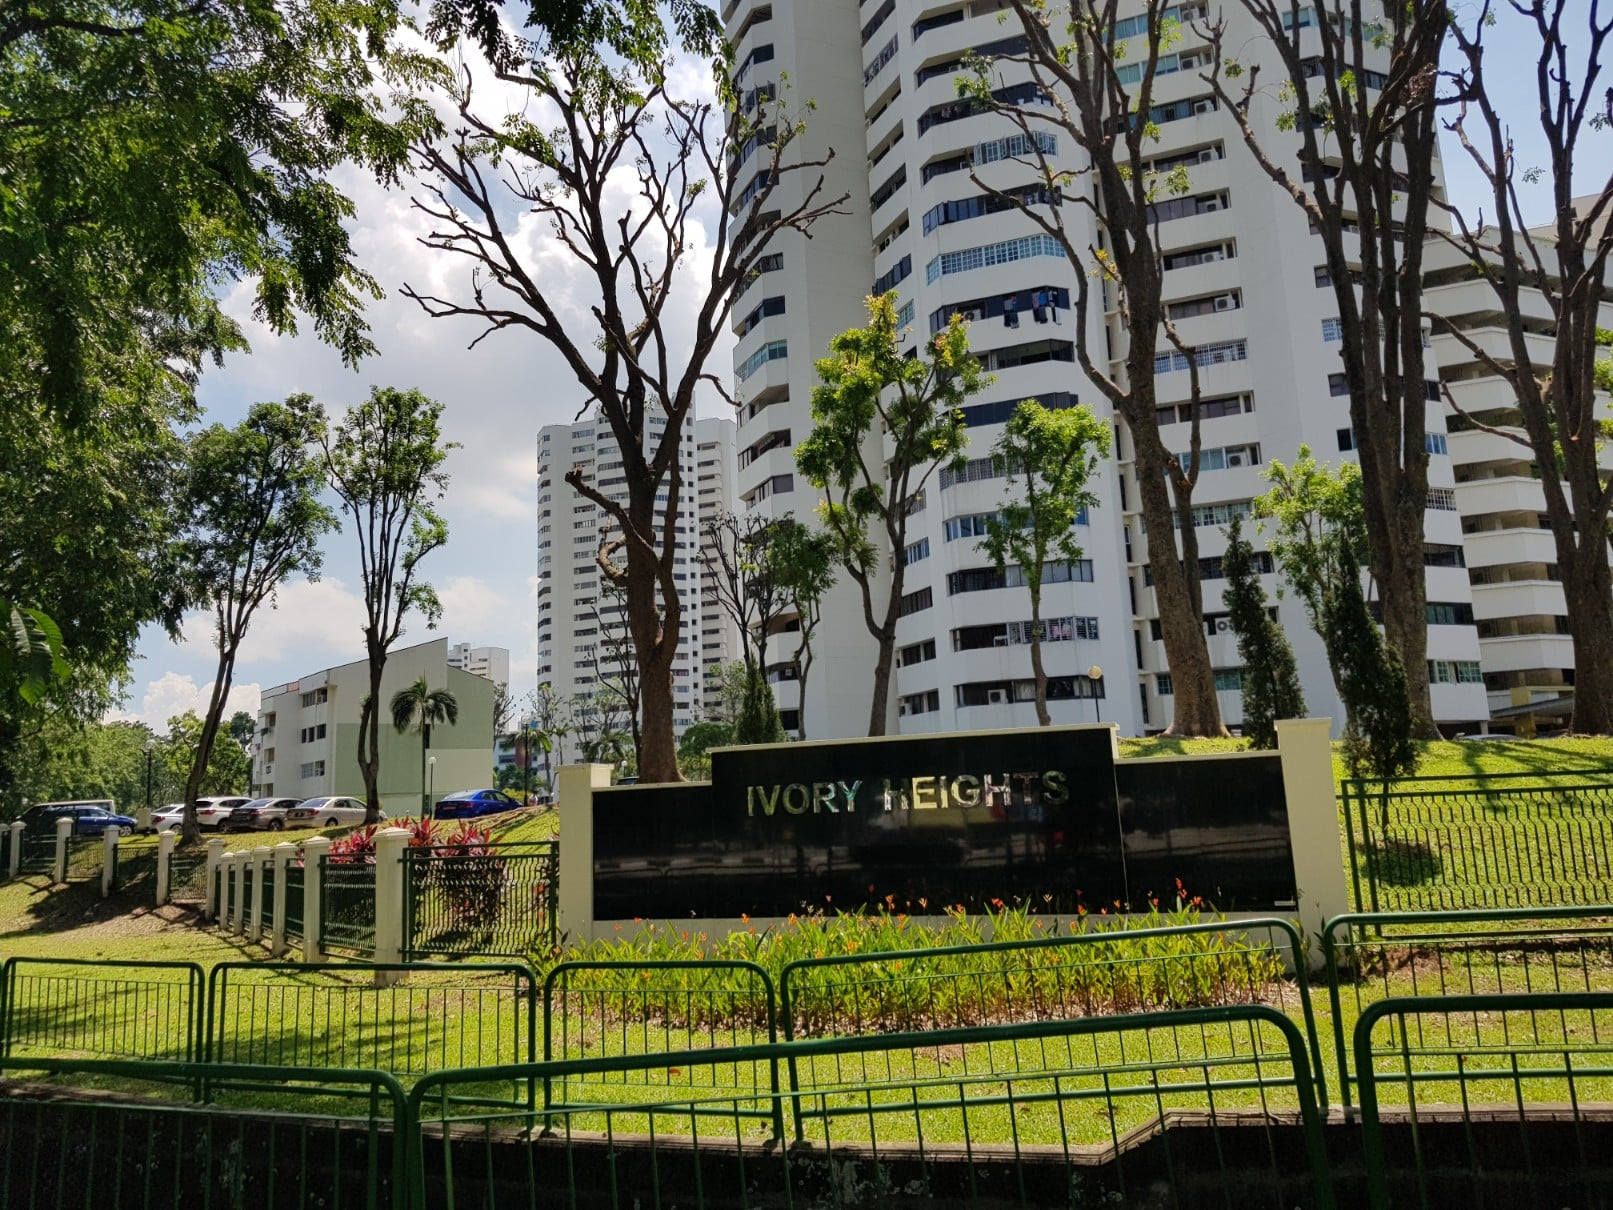 Ivory heights stacked homes en bloc potential